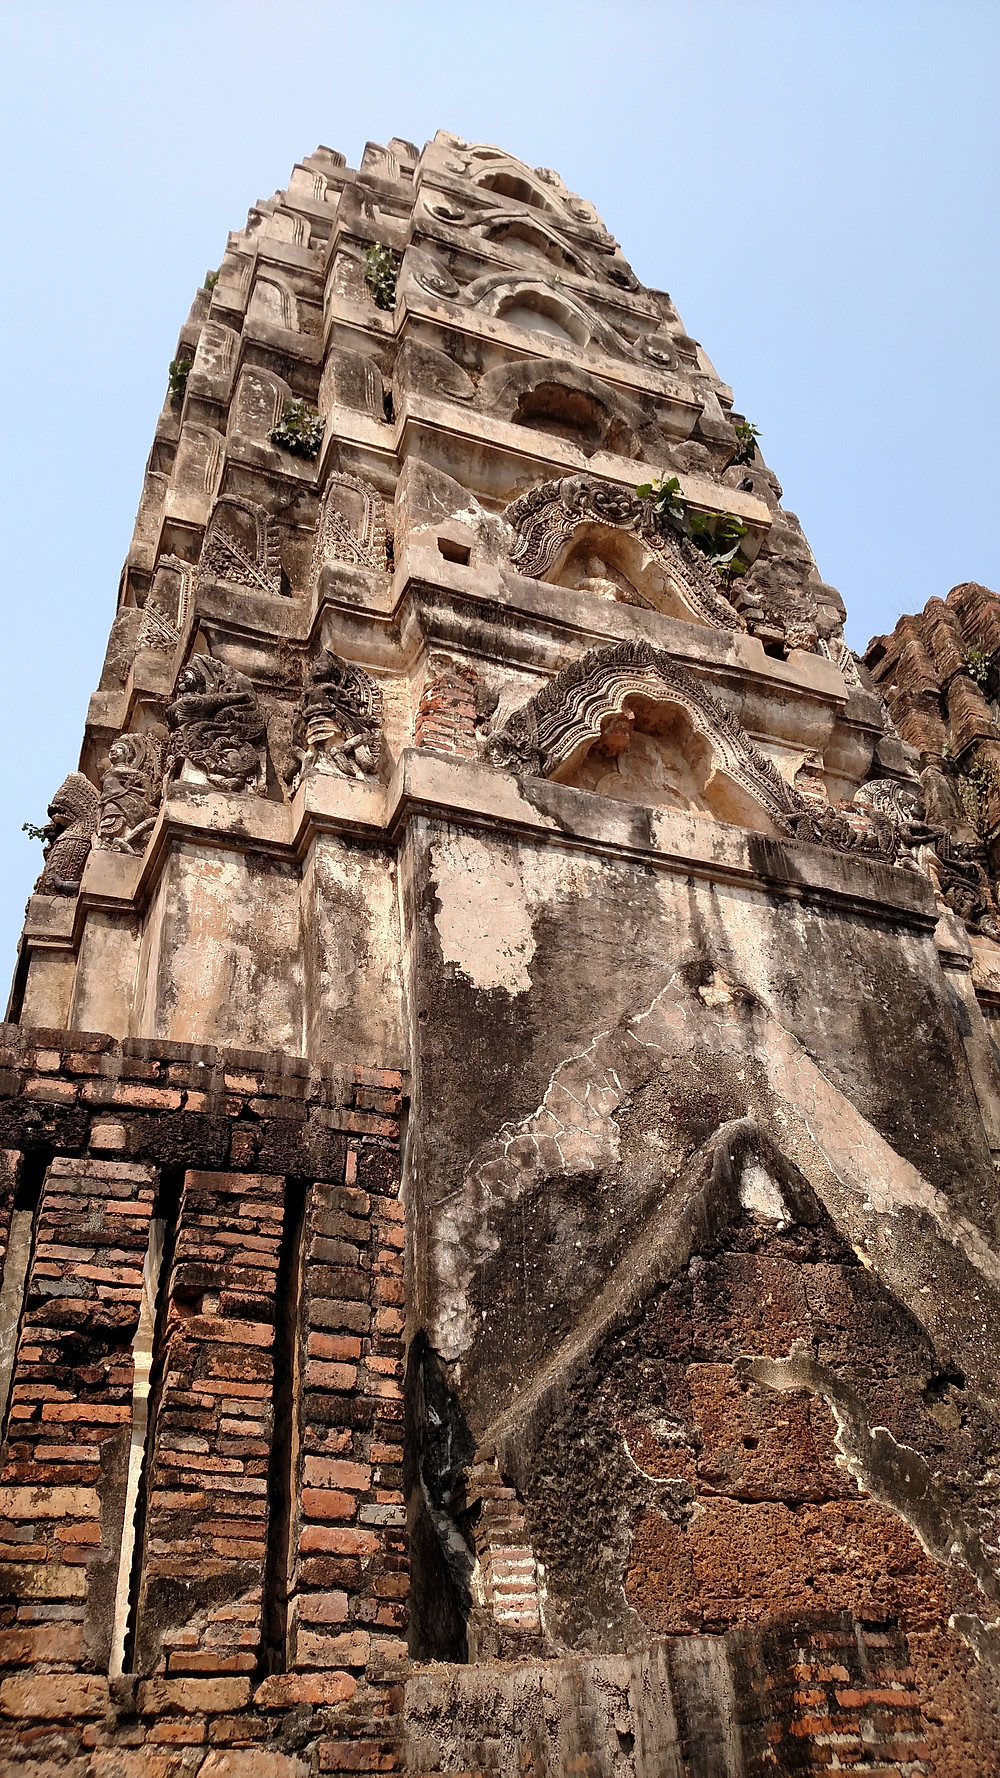 Strolling around the temple ruins of Sukhothai Thailand.